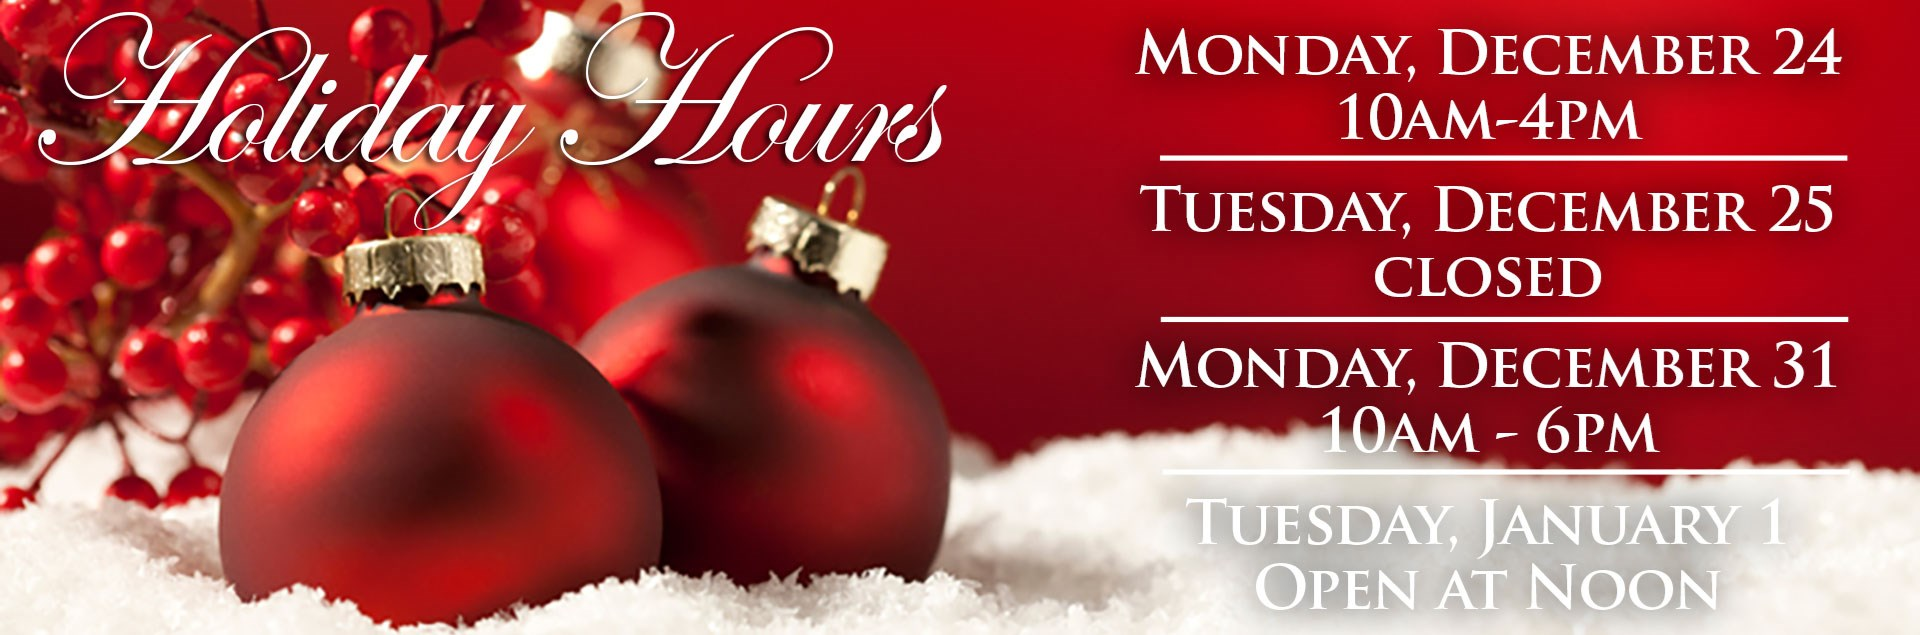 Sadlers Holiday Hours